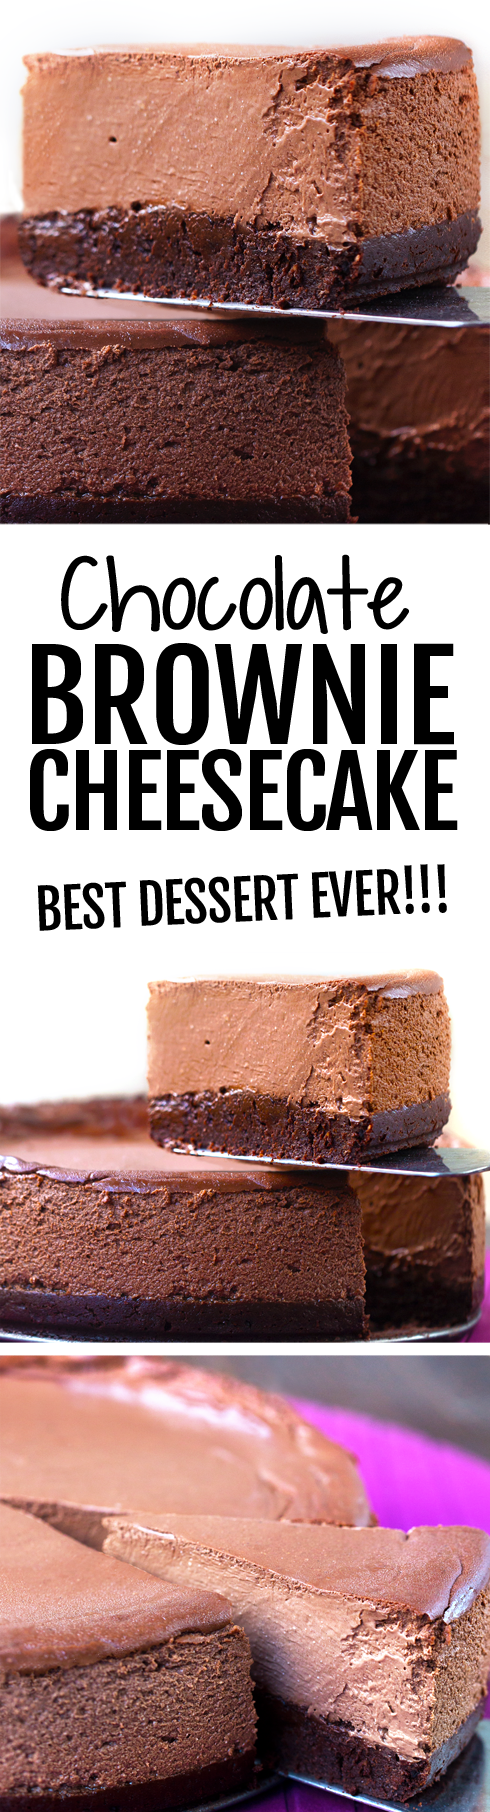 The Ultimate Chocolate Cheesecake, with a brownie crust, easy to make keto